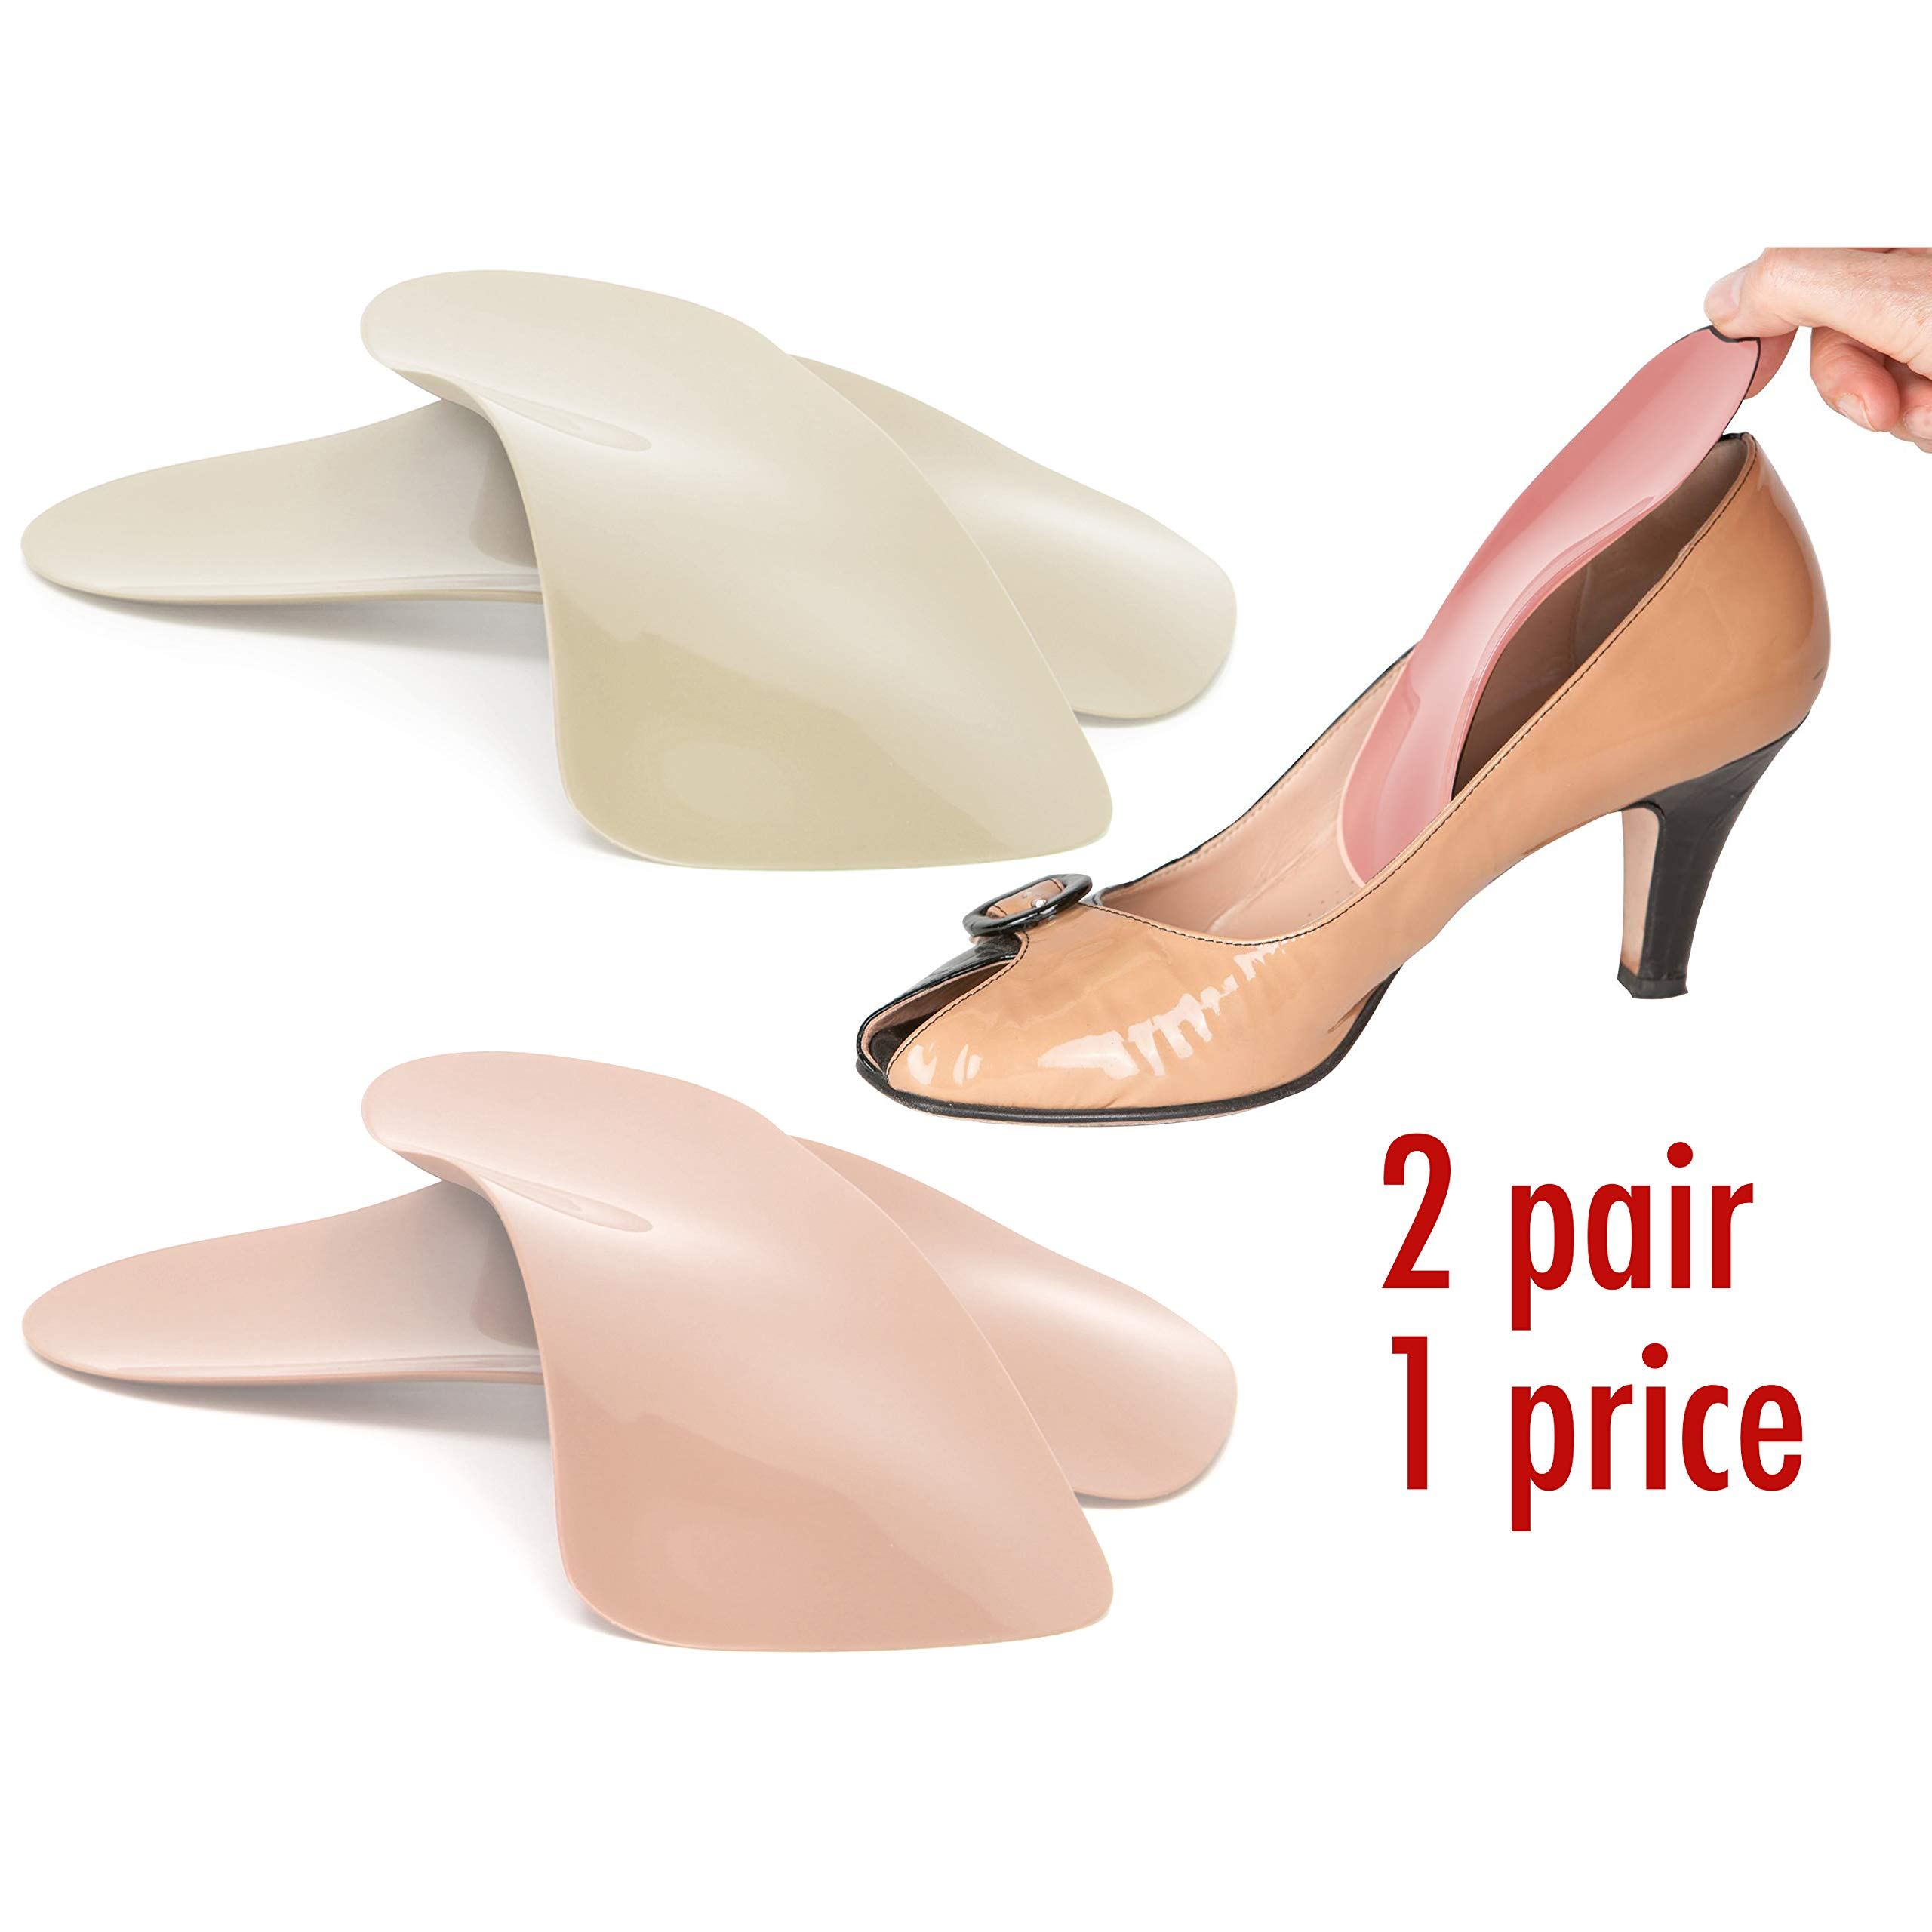 Travel Feet Balance Lady Foot Arch Supports for High Heels-Orthotic Insoles-Shoe Inserts for Women (2W6) Peach by Foot Supports Int'l